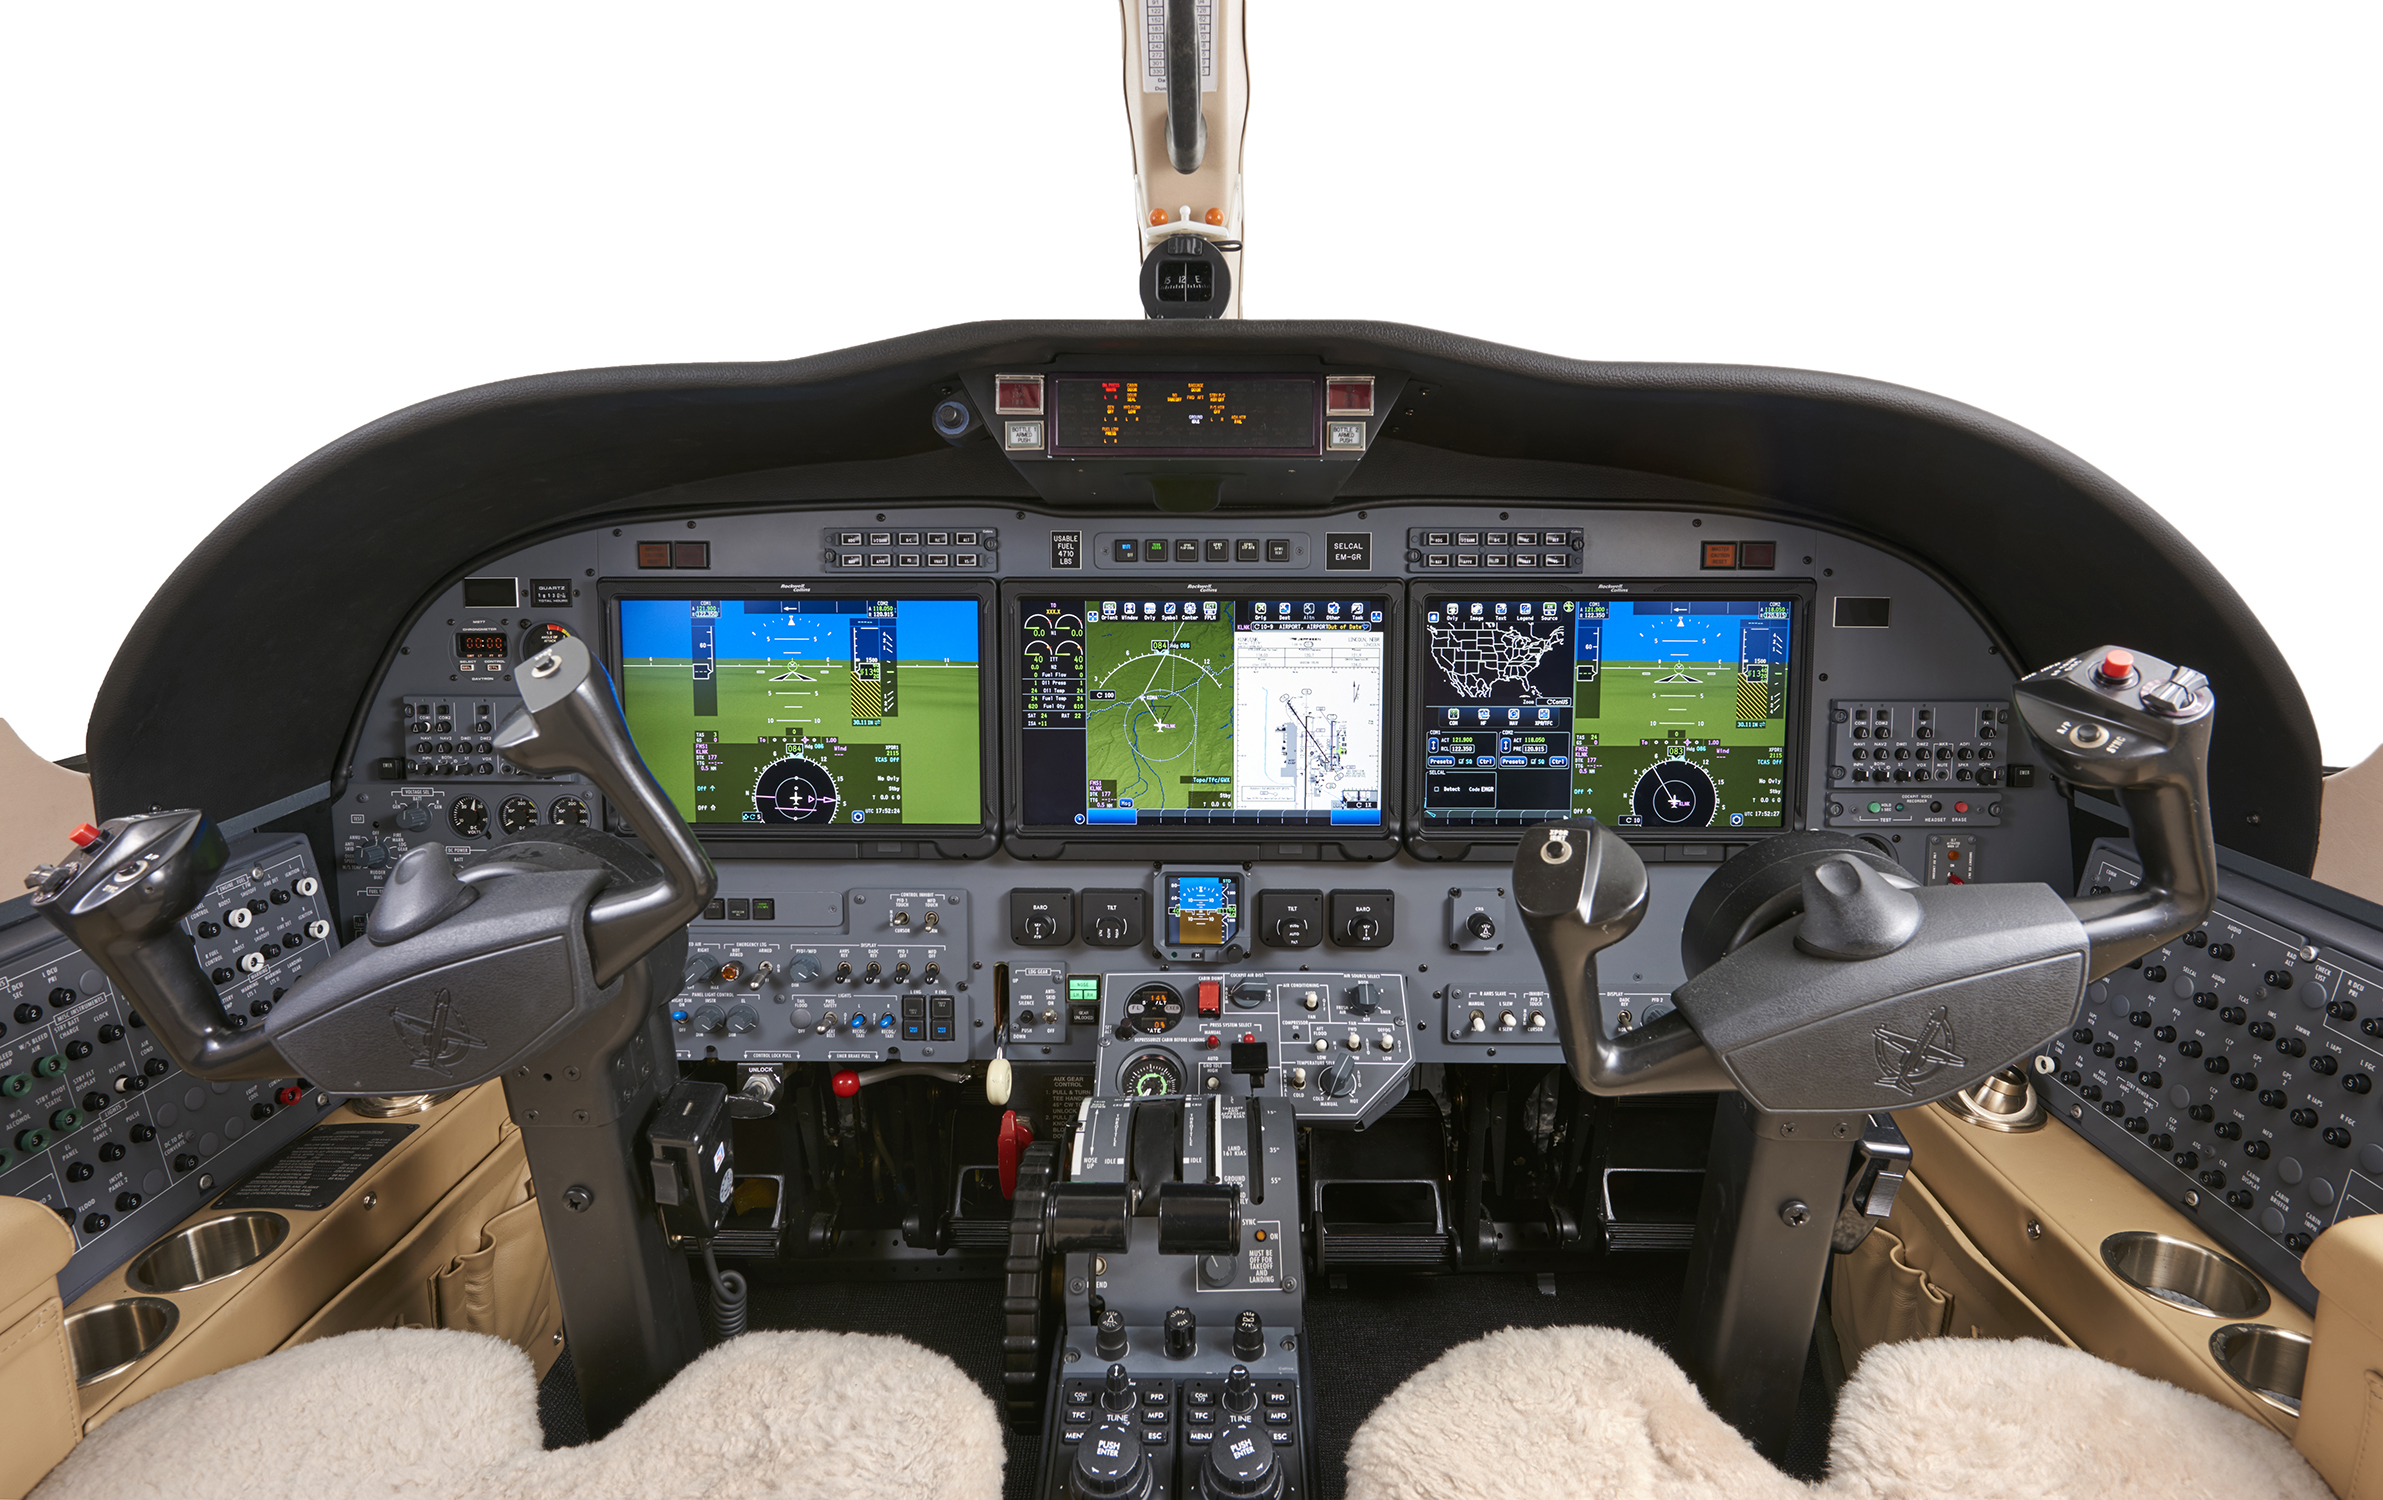 Press-Size-CJ3-Fusion-Flightdeck